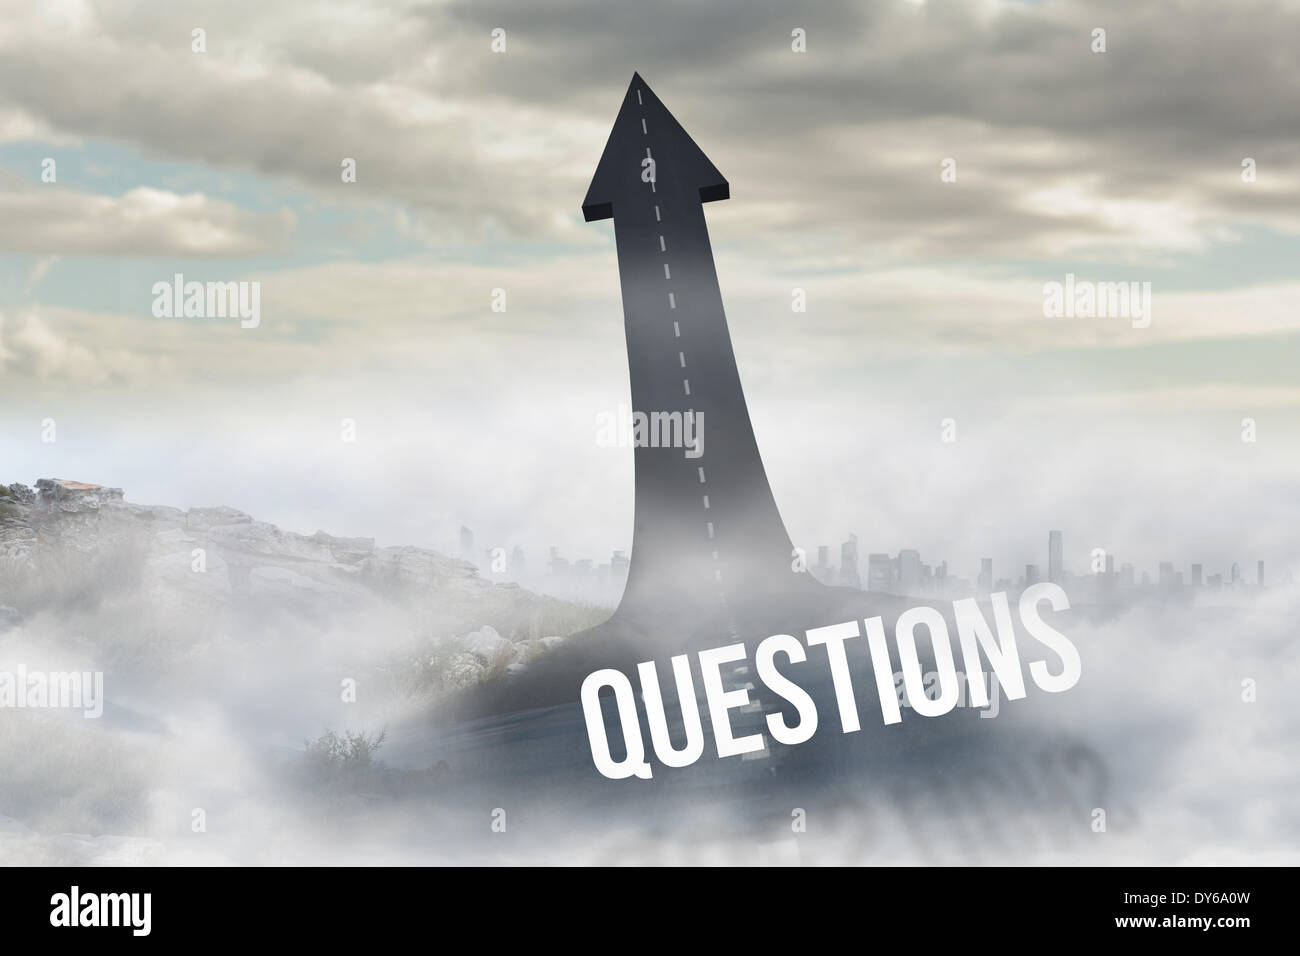 Questions against road turning into arrow - Stock Image